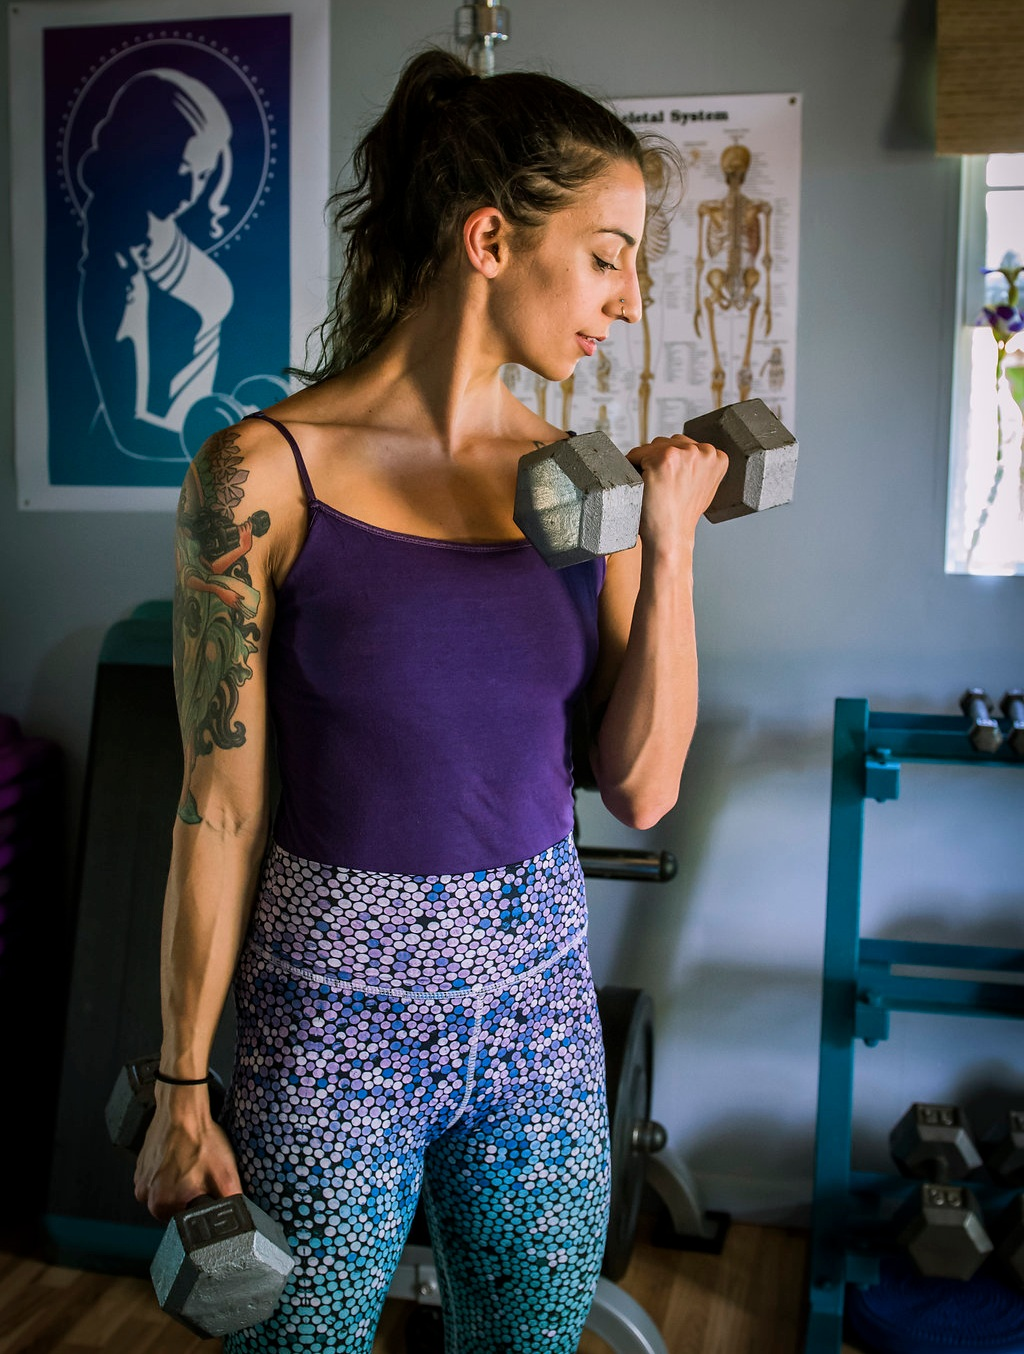 Personal trainer Taija Ventrella working out in her private fitness studio in West Asheville.